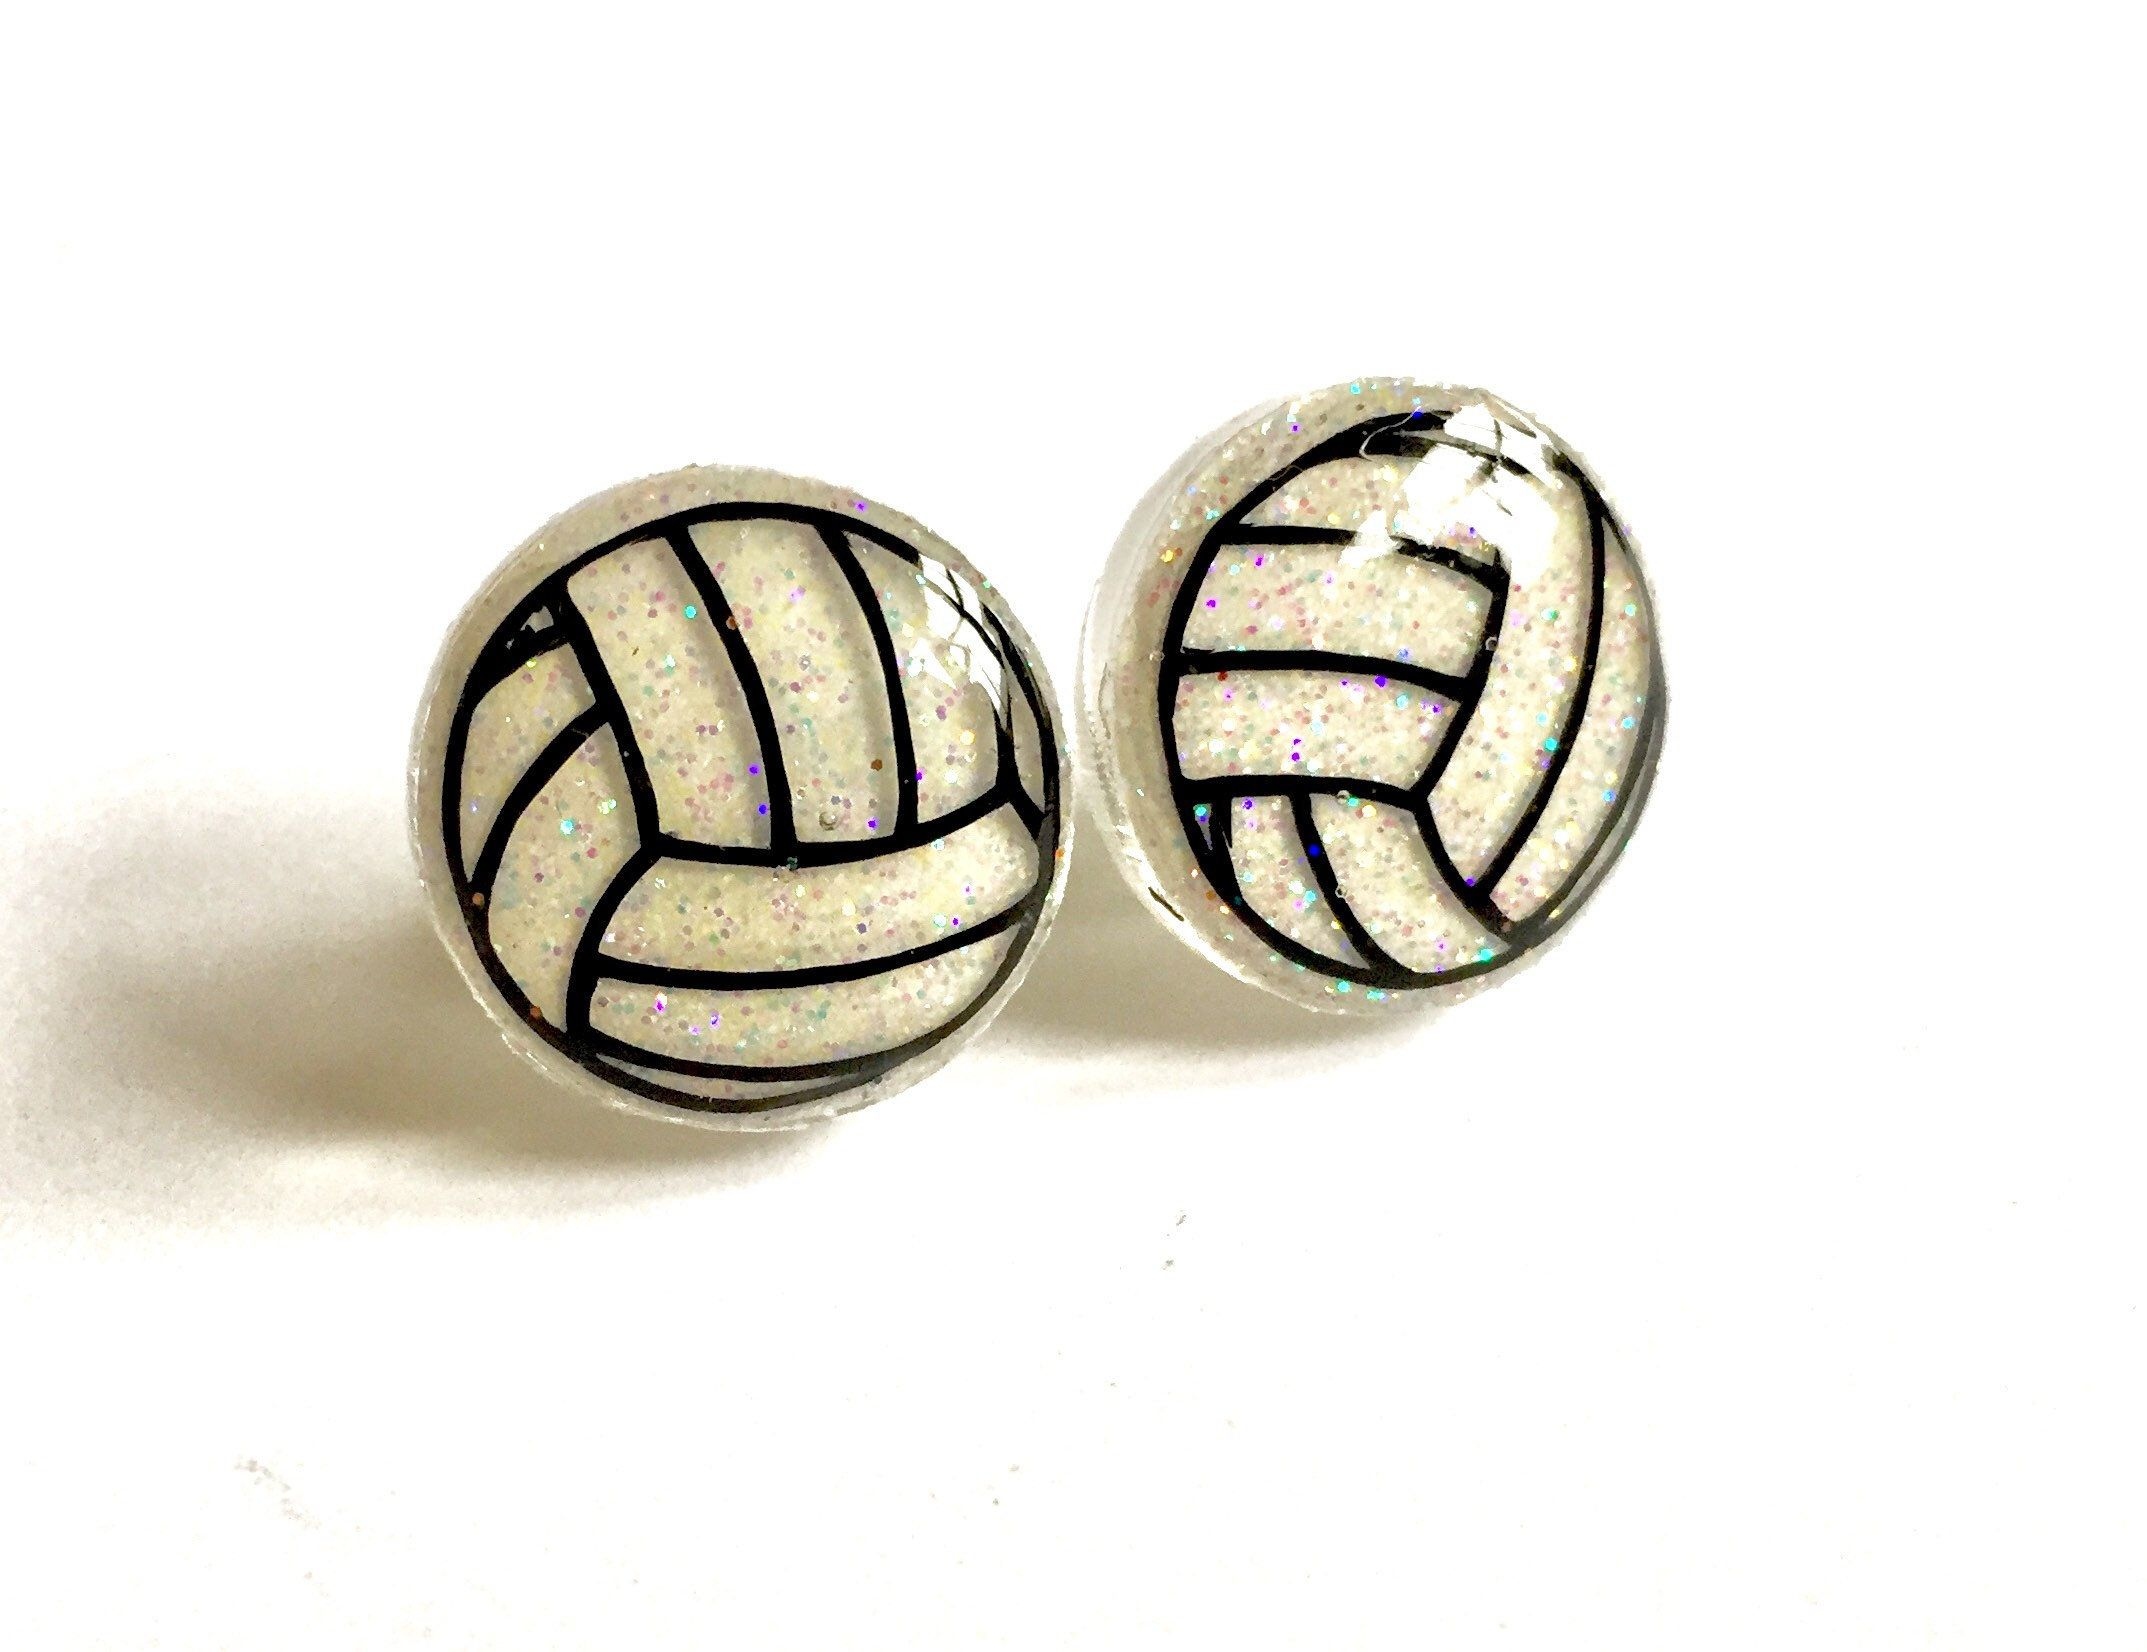 Volleyball Earrings Volleyball Gifts Volleyball Stud Earrings Volleyball Gift For Team Volleyball Gift For Girls Vo Gifts For Girls Stud Earrings Earrings